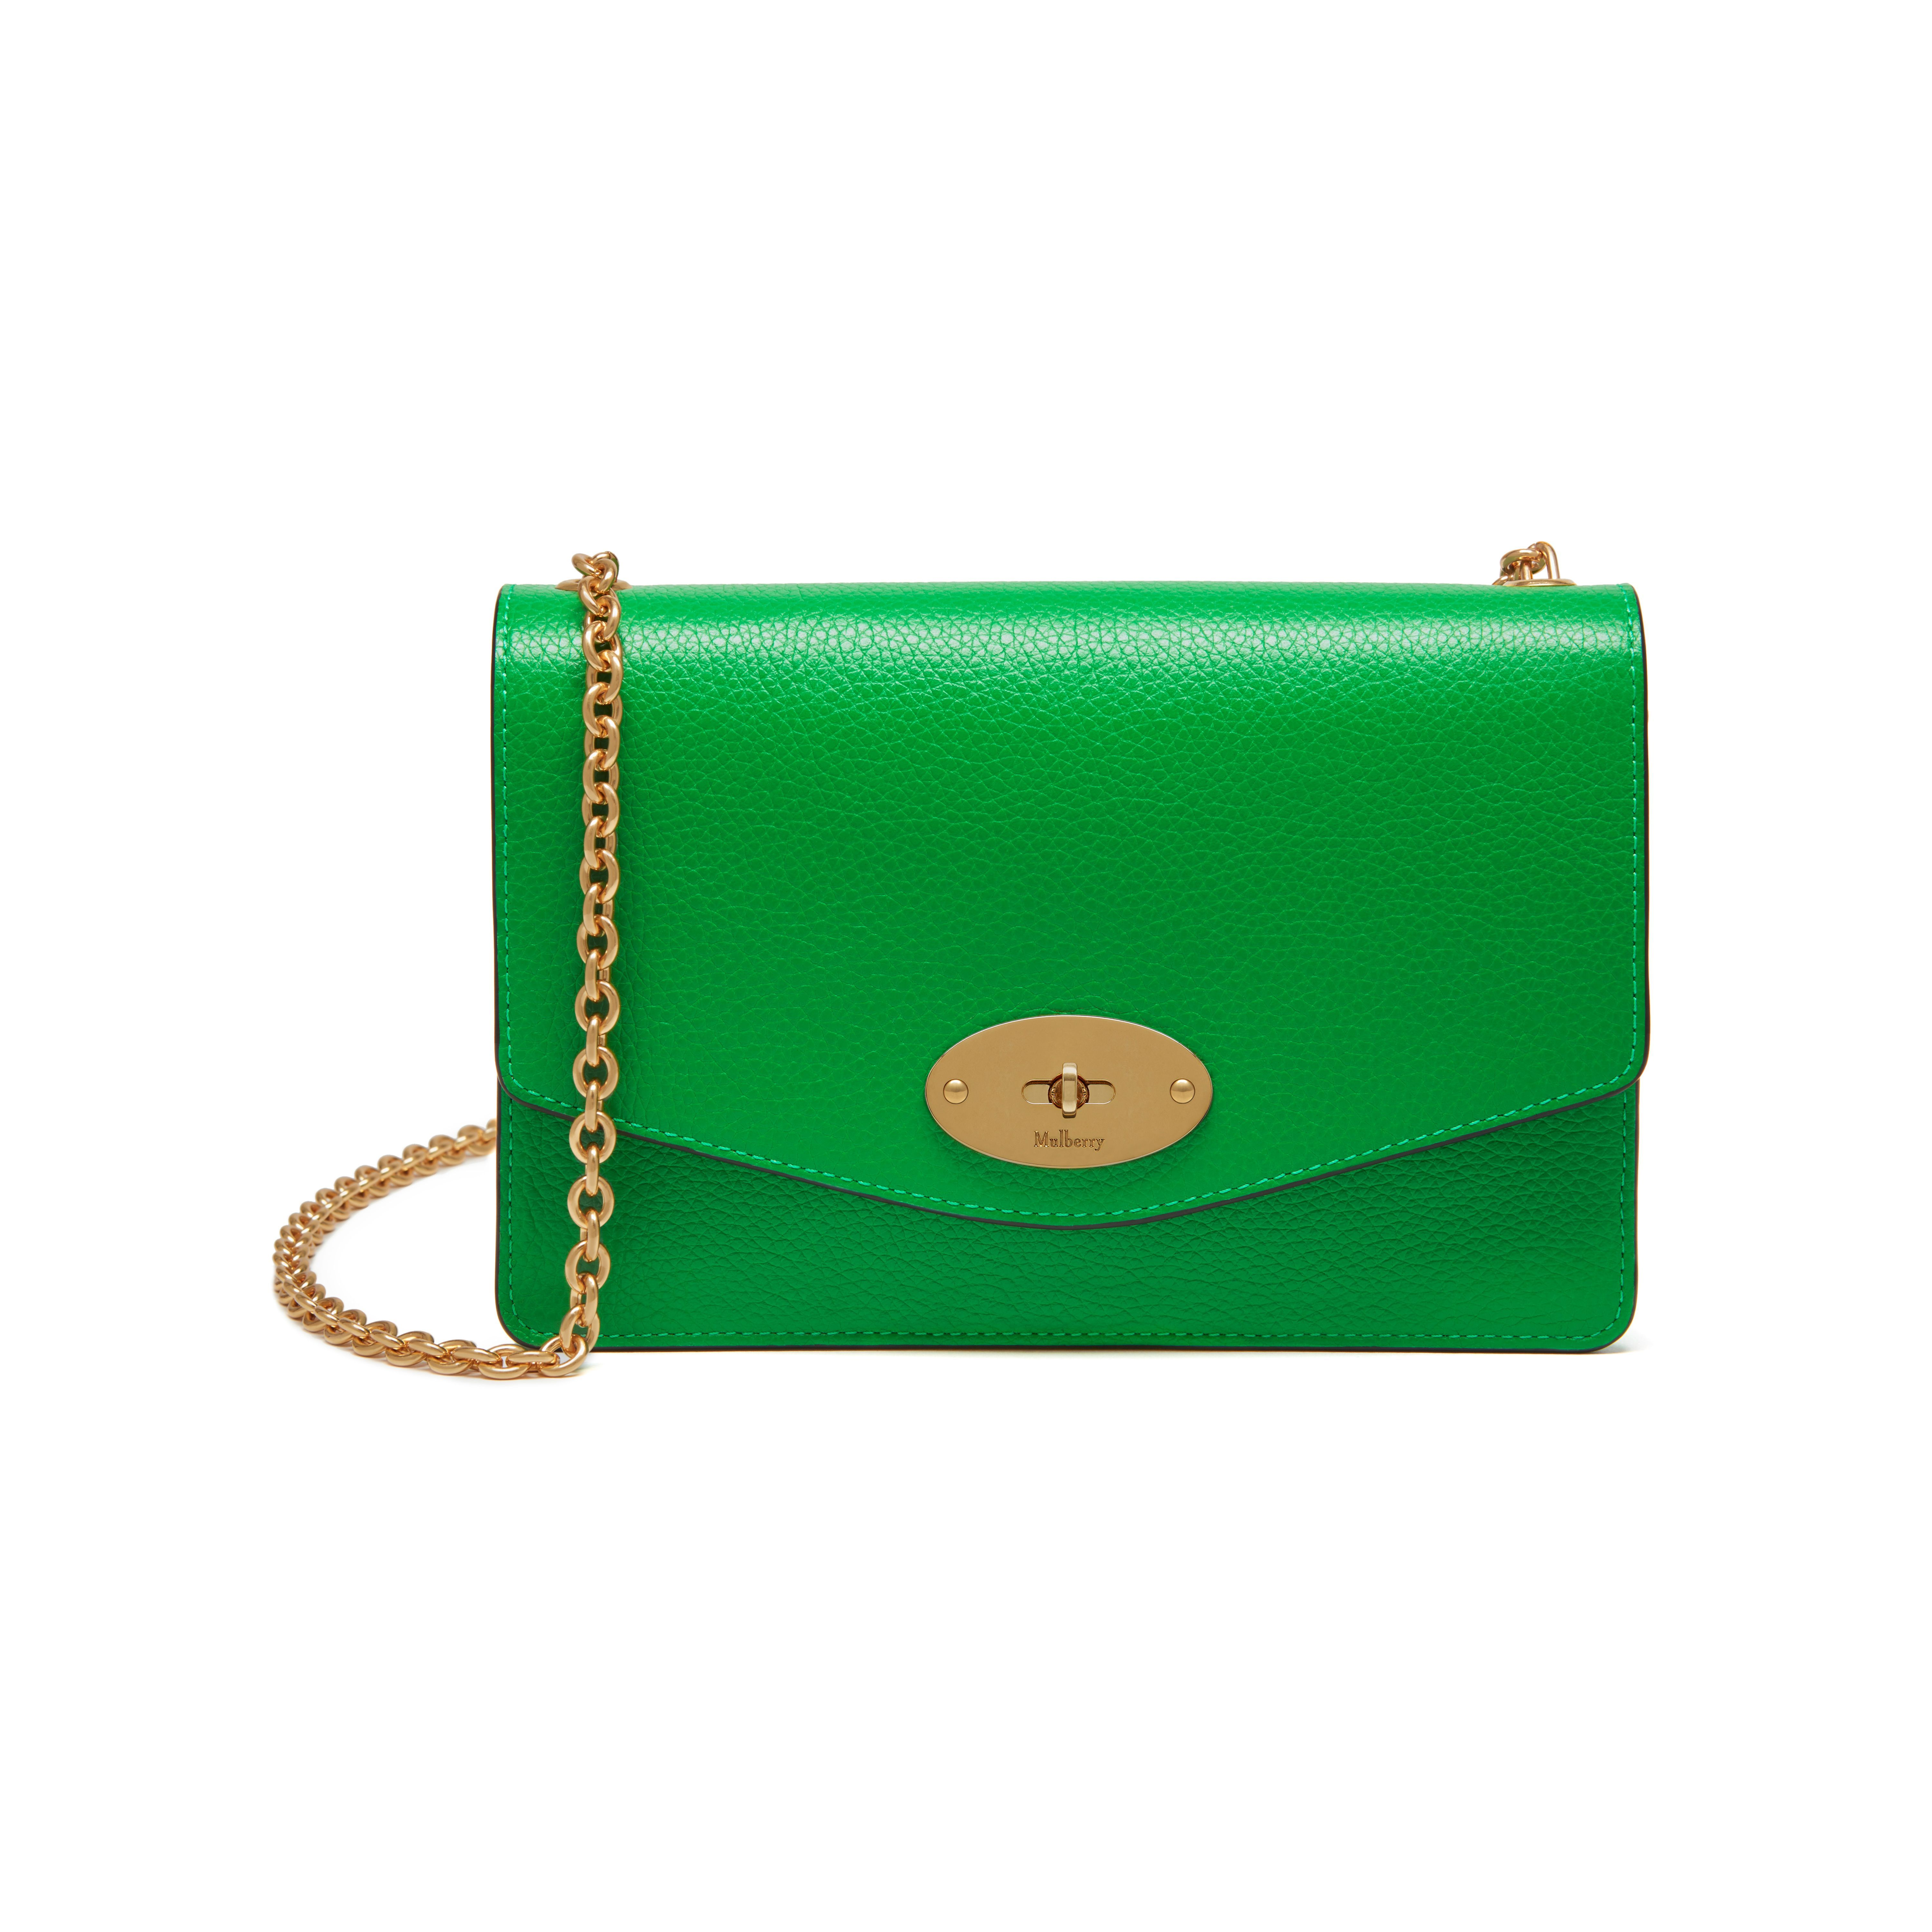 Shop the Small Darley in Grass Green Small Classic Grain Leather at Mulberry .com. fabbd671df